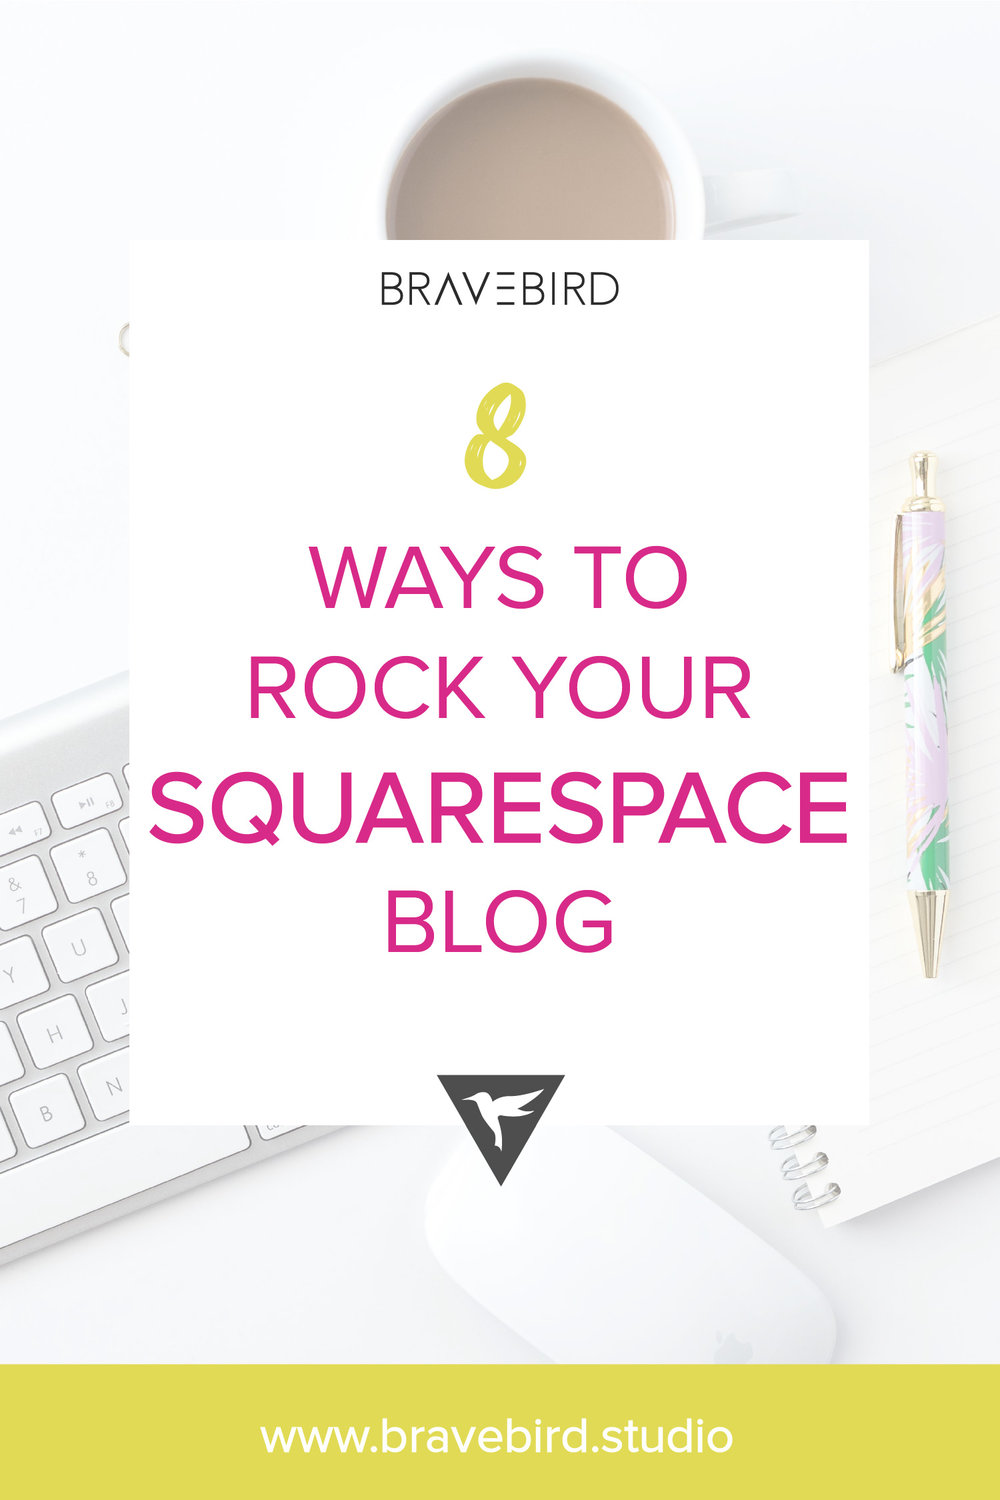 8 ways to rock your Squarespace blog | Bravebird Studio